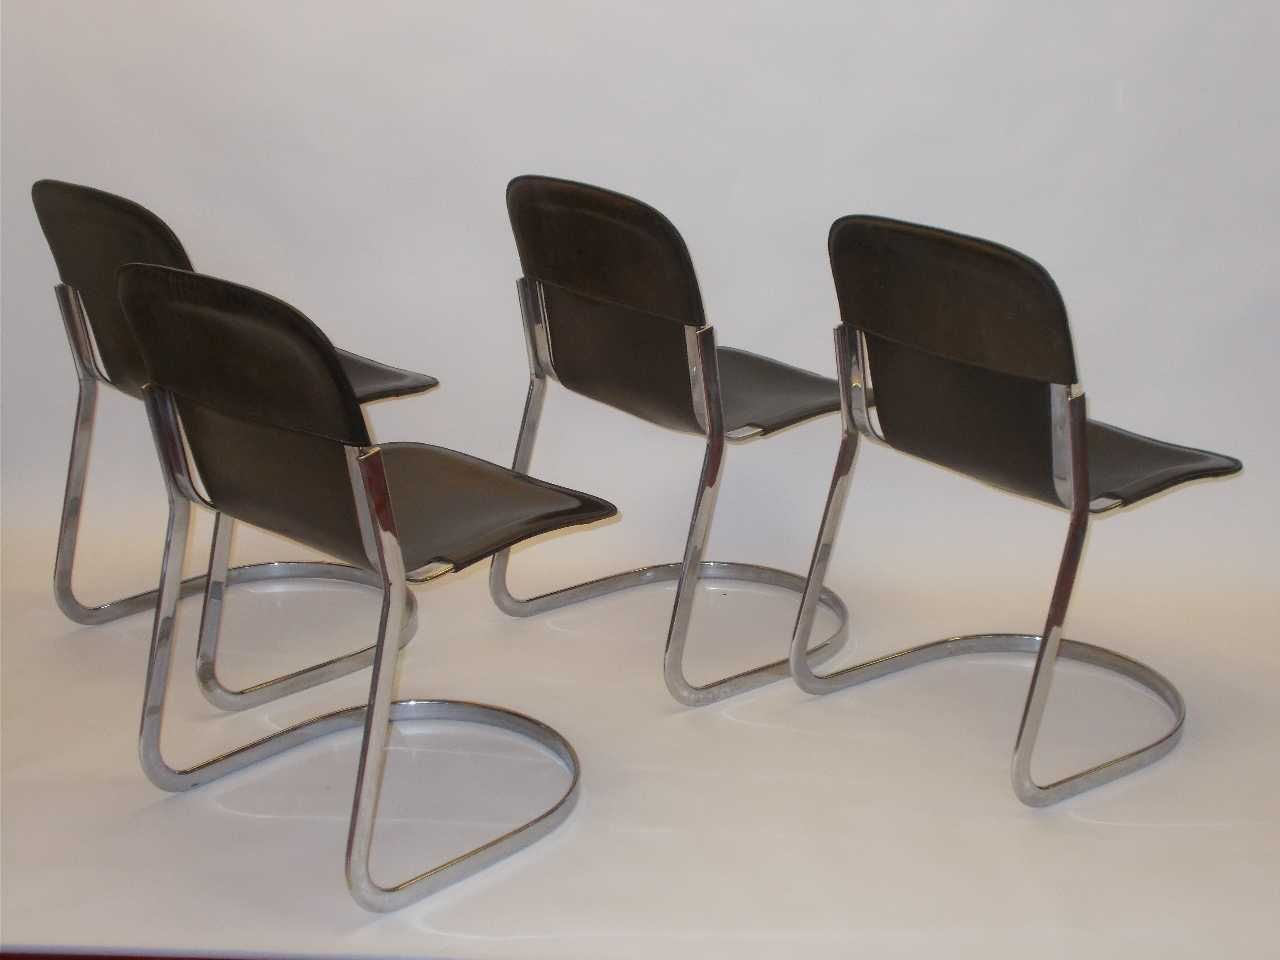 dark brown leather dining chairs by willy rizzo 1960s set of 4 for